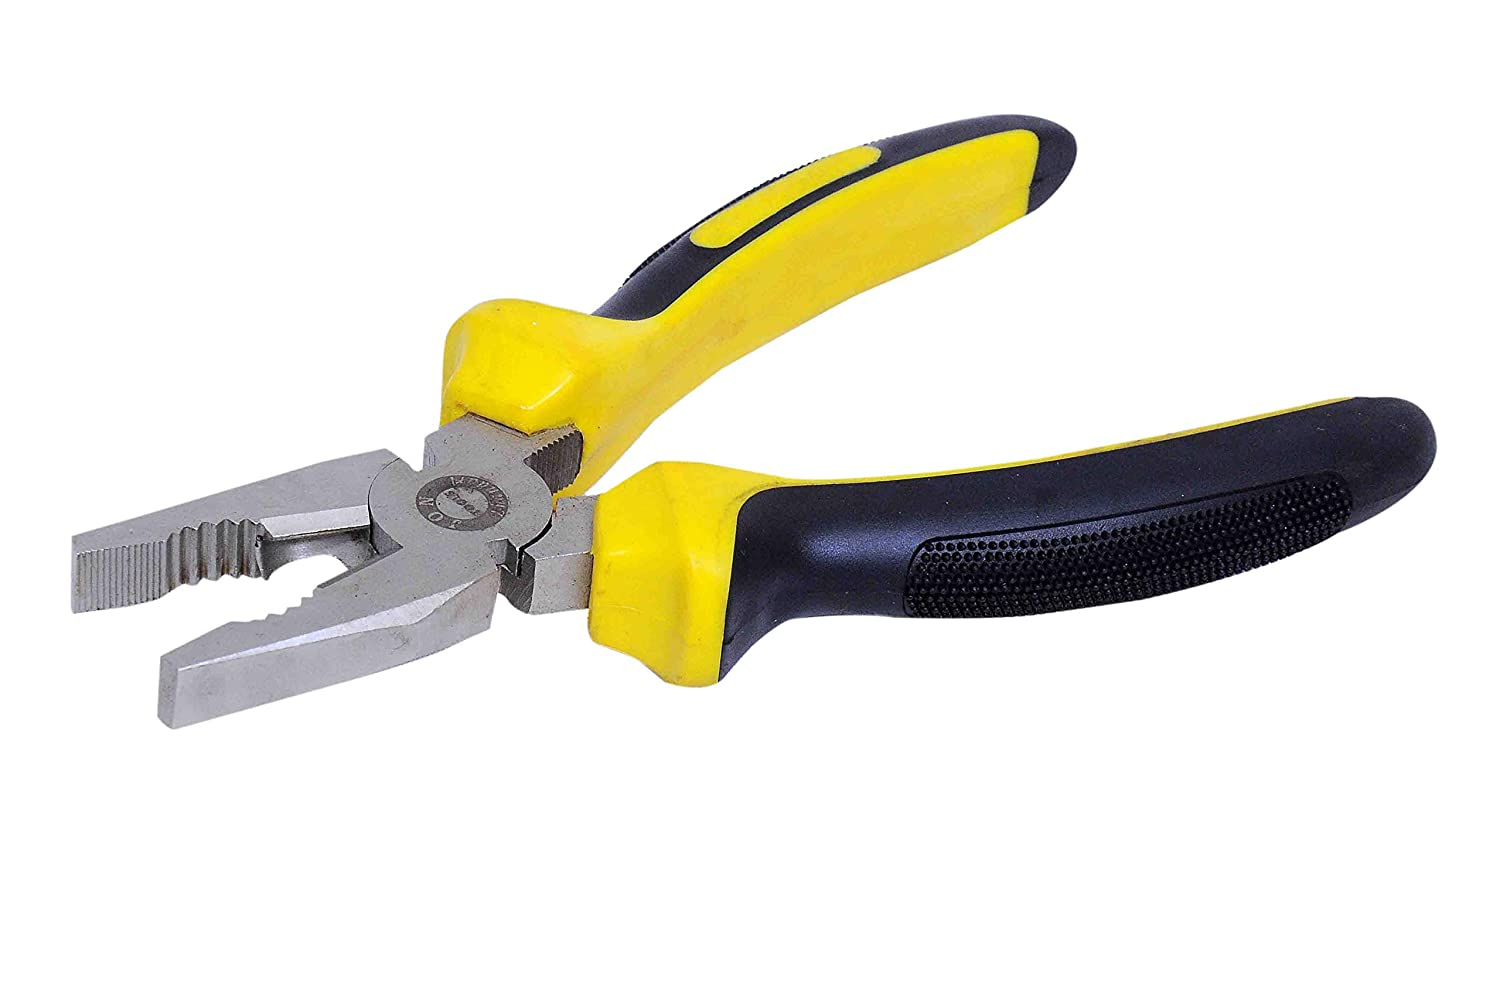 How to Select the Right Pliers Pair for Your Job?